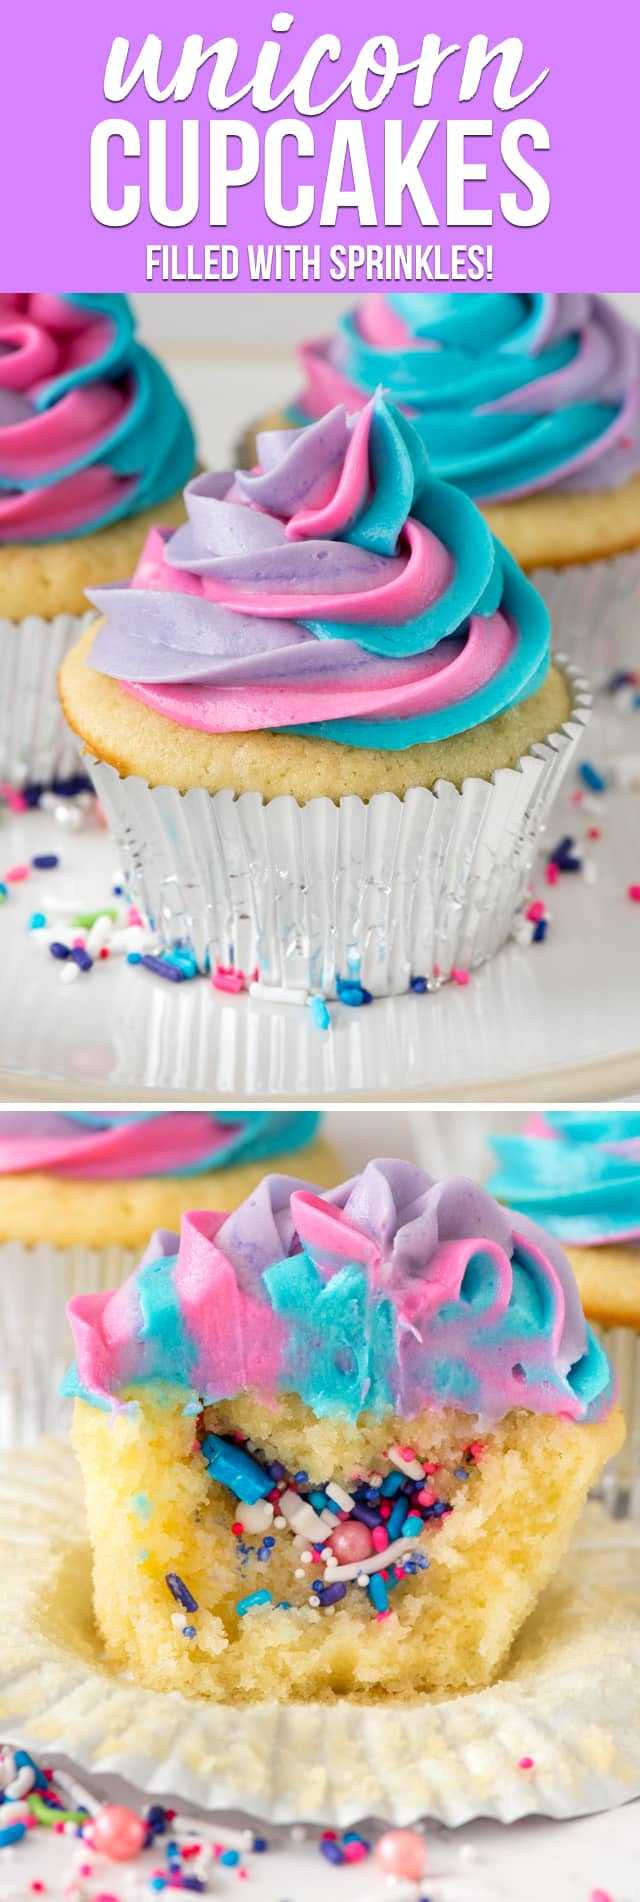 Unicorn Cupcakes are such a fun way to celebrate a birthday! Fill vanilla cupcakes with sprinkles and top with a swirled colorful frosting. Kids and adults will love this easy cupcake recipe!